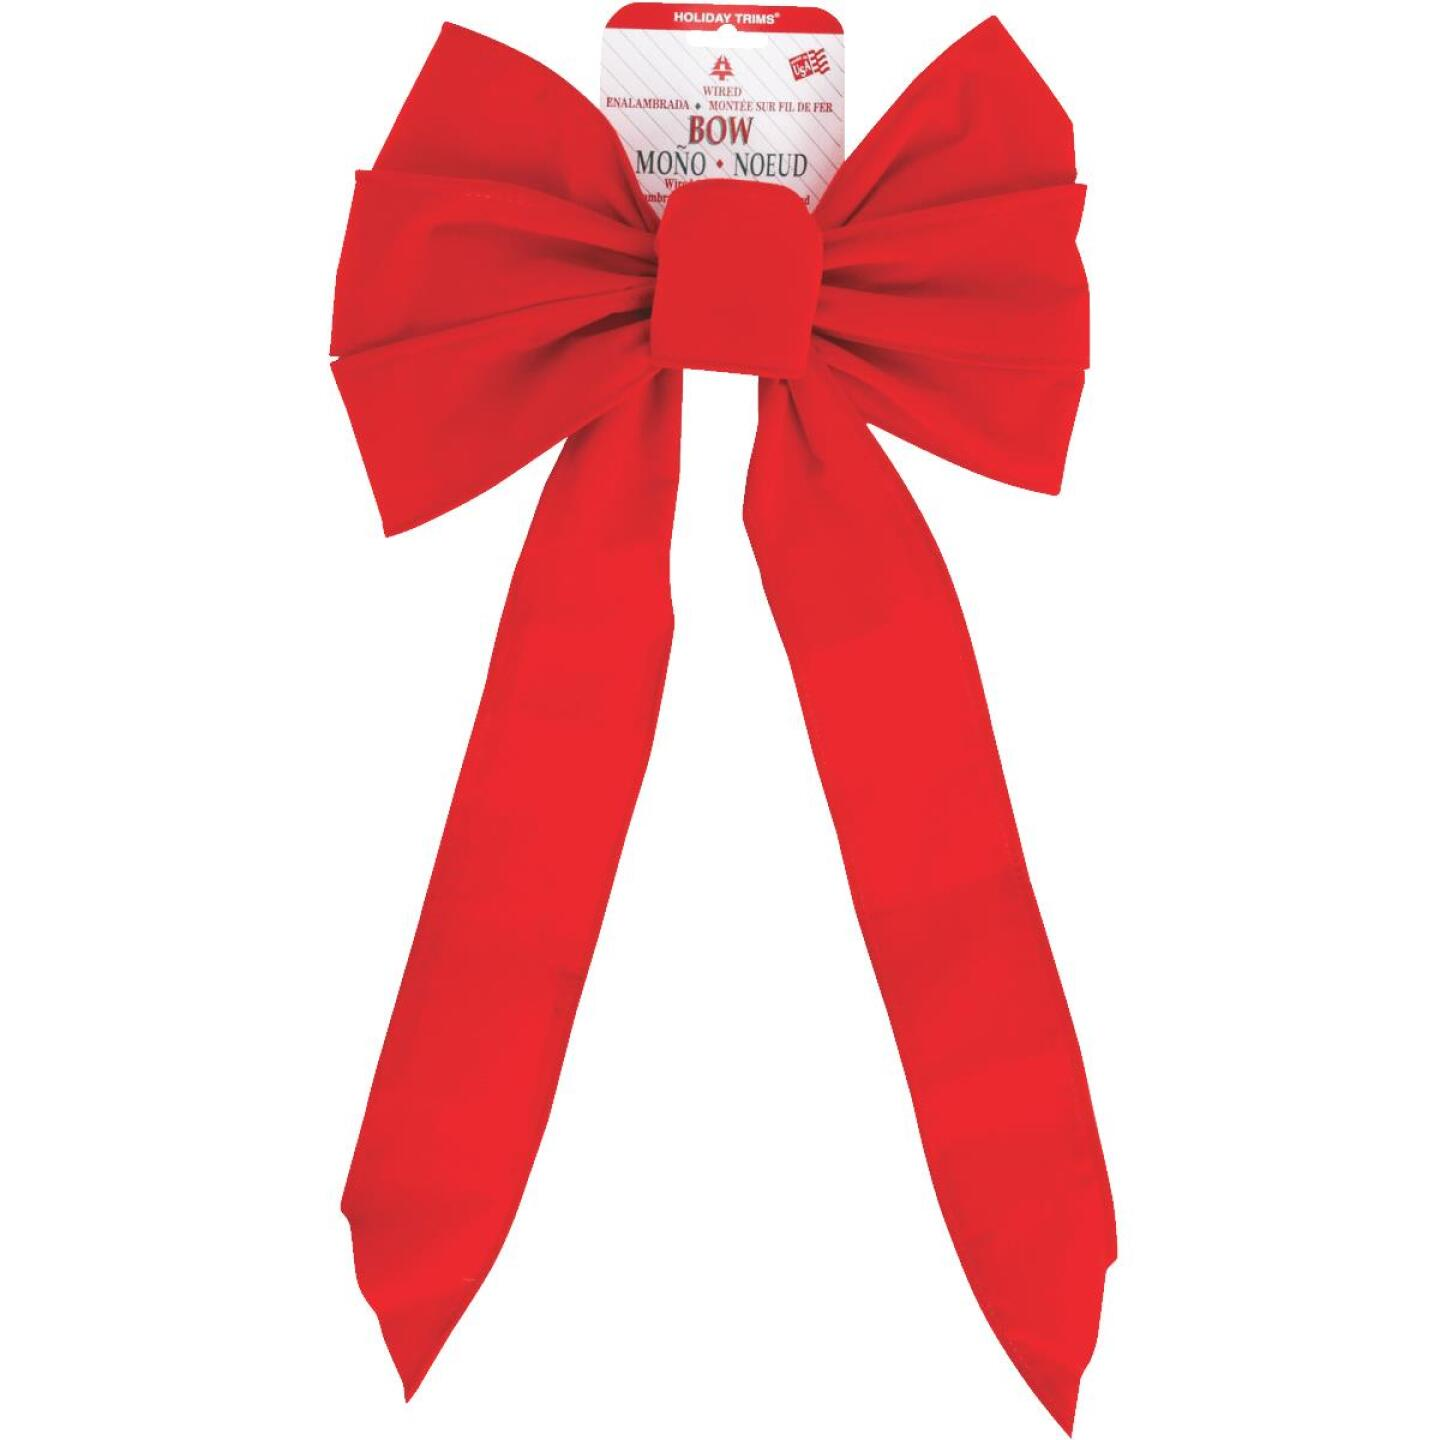 Holiday Trims 7-Loop 10 In. W. x 22 In. L. Red Velvet Wire Christmas Bow Image 2